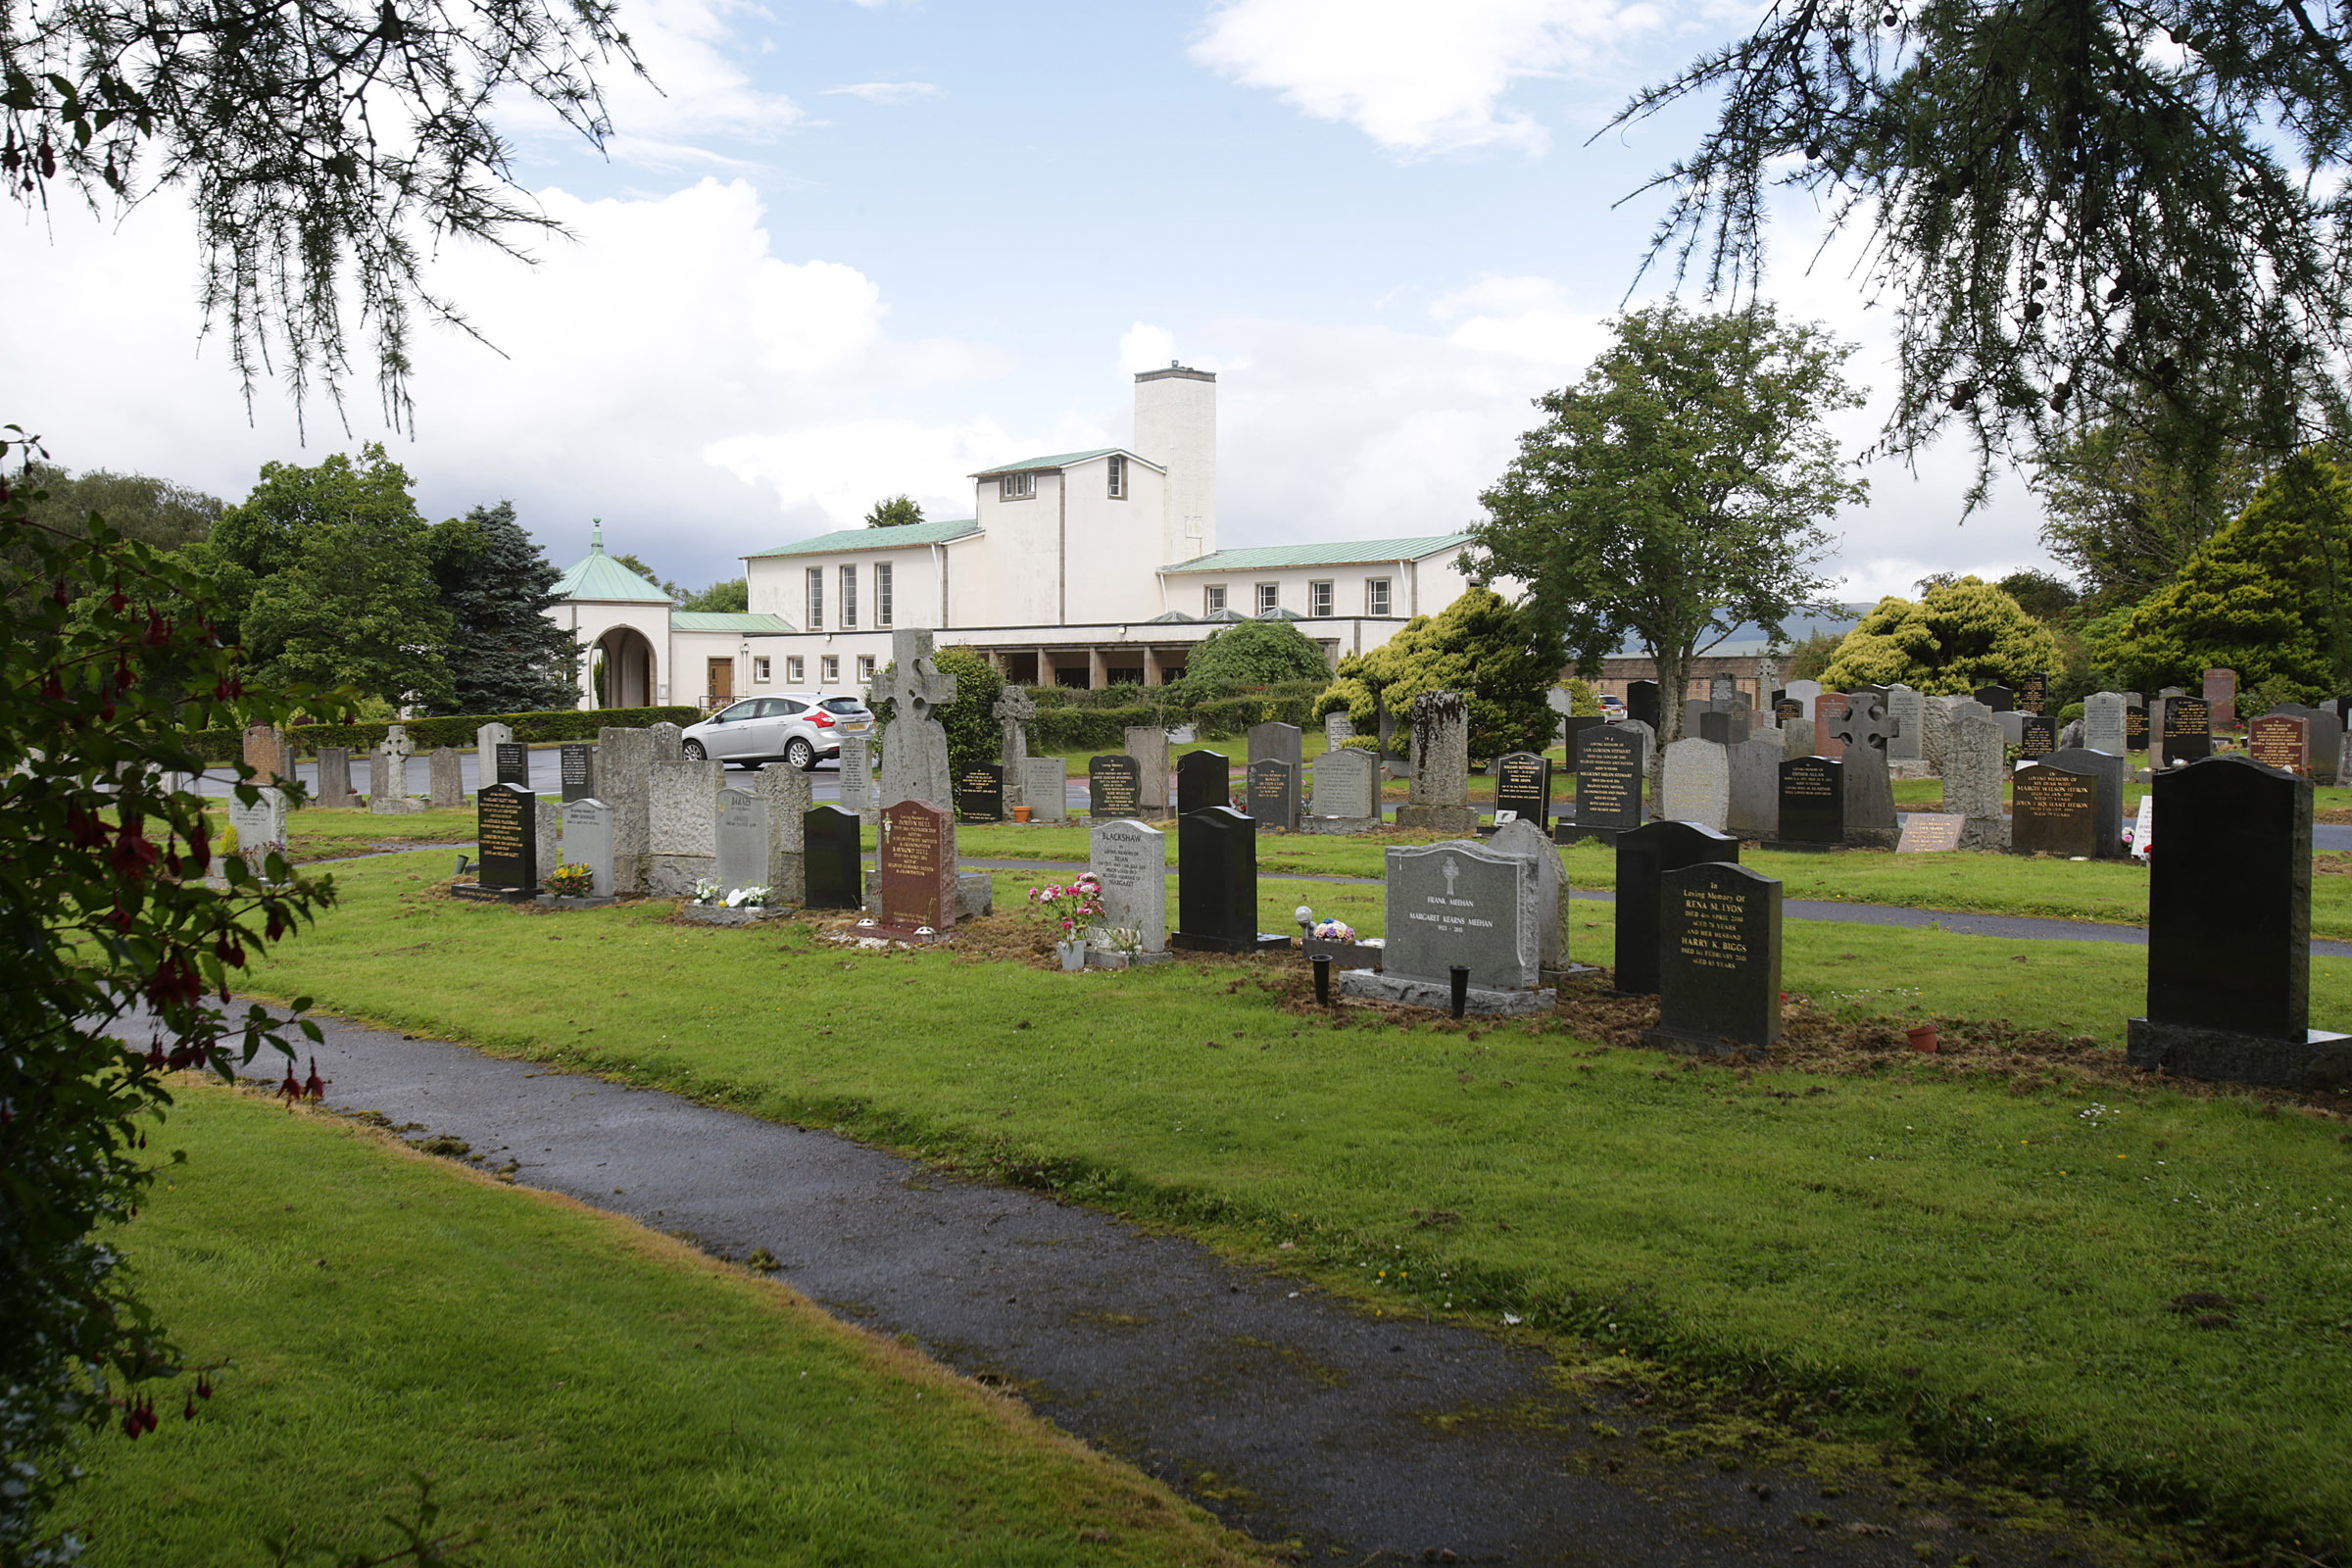 Cardross Cemetery and crematorium